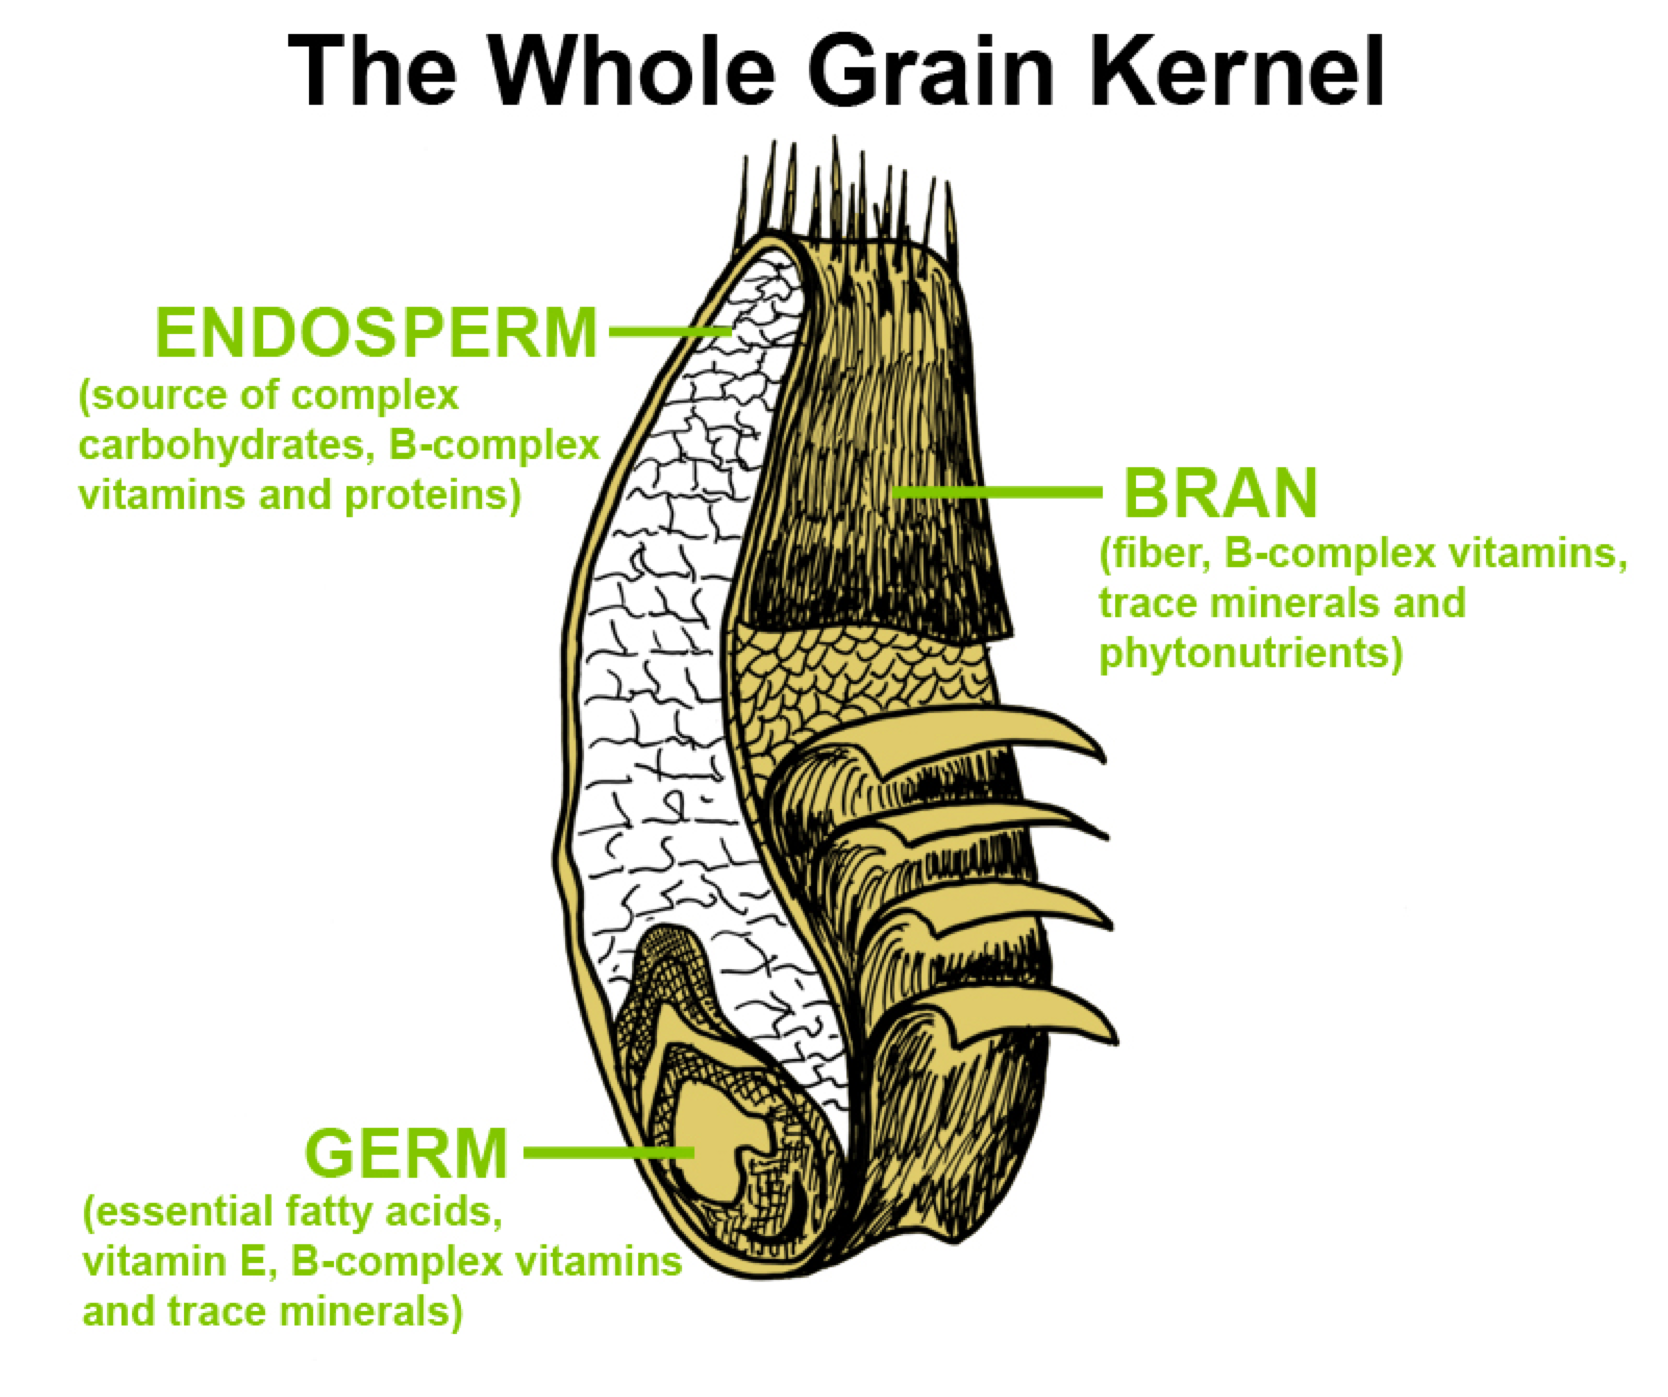 medium resolution of the whole grain kernel